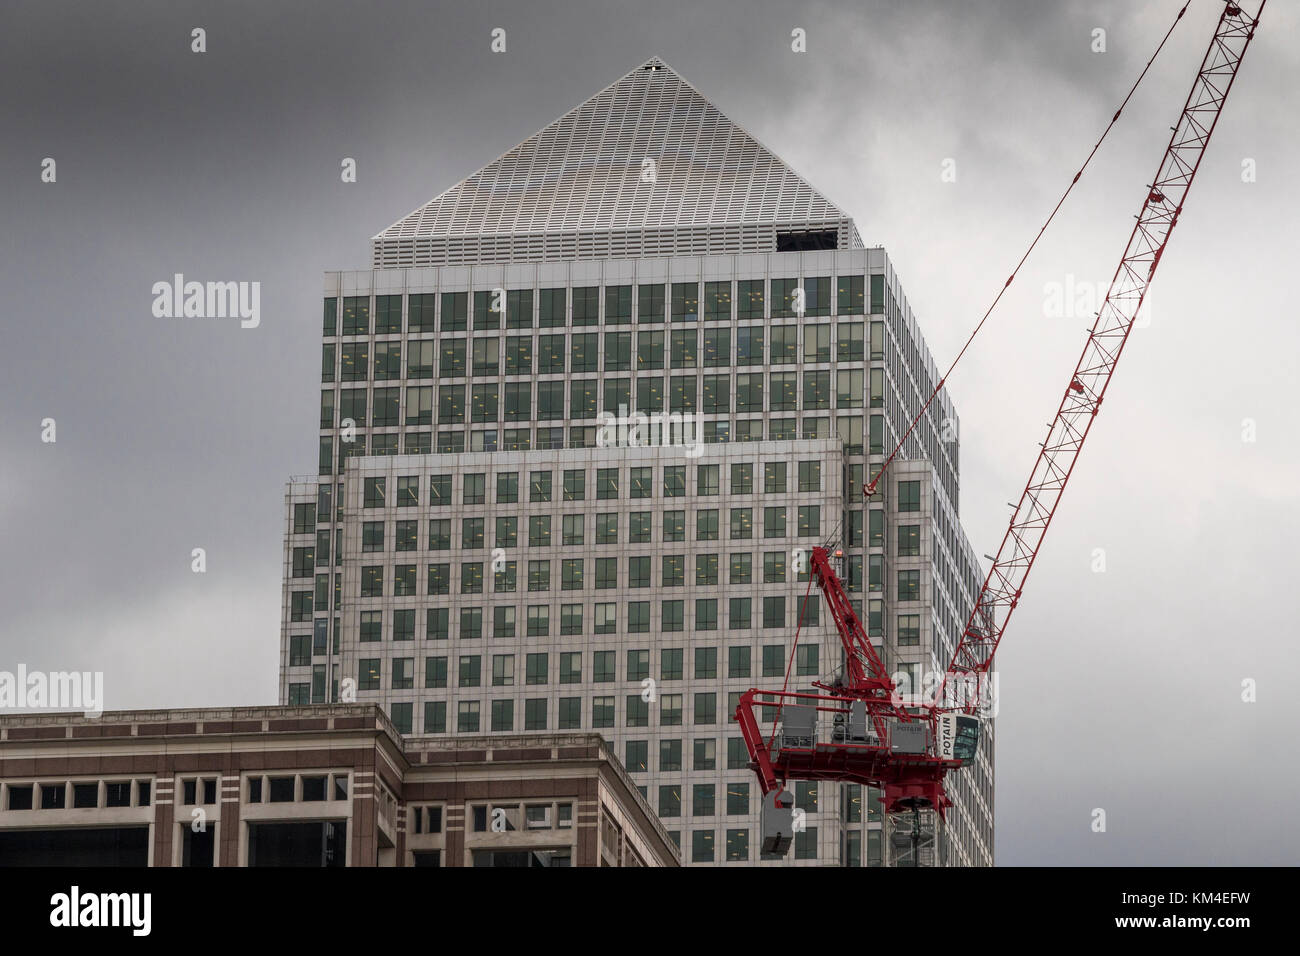 A construction site crane at work overlooked by  The Giant tower of One Canada Square ,Canary Wharf , Docklands, - Stock Image